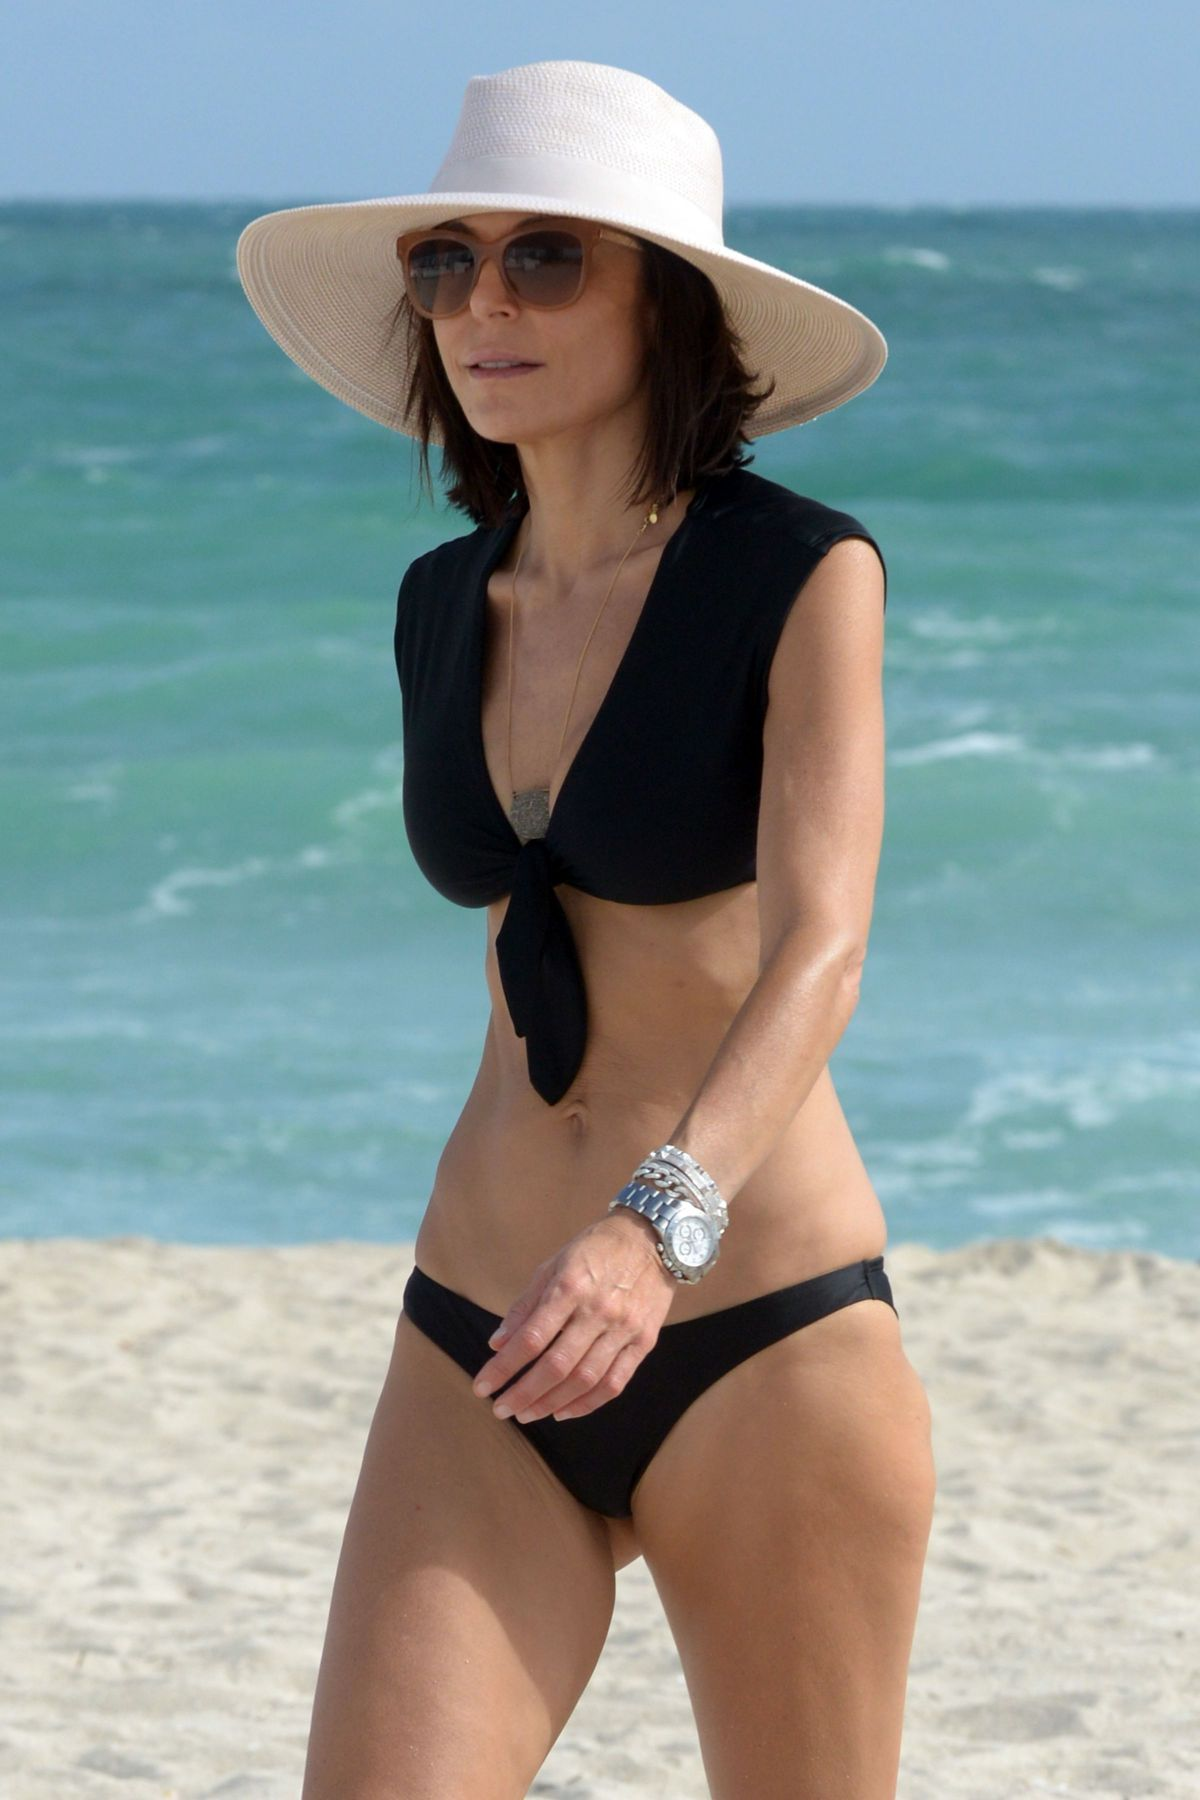 BETHENNY FRANKEL in Bikini on the Beach in Miami 12/05/2016   bethenny-frankel-in-bikini-on-the-beach-in-miami-12-05-2016_51